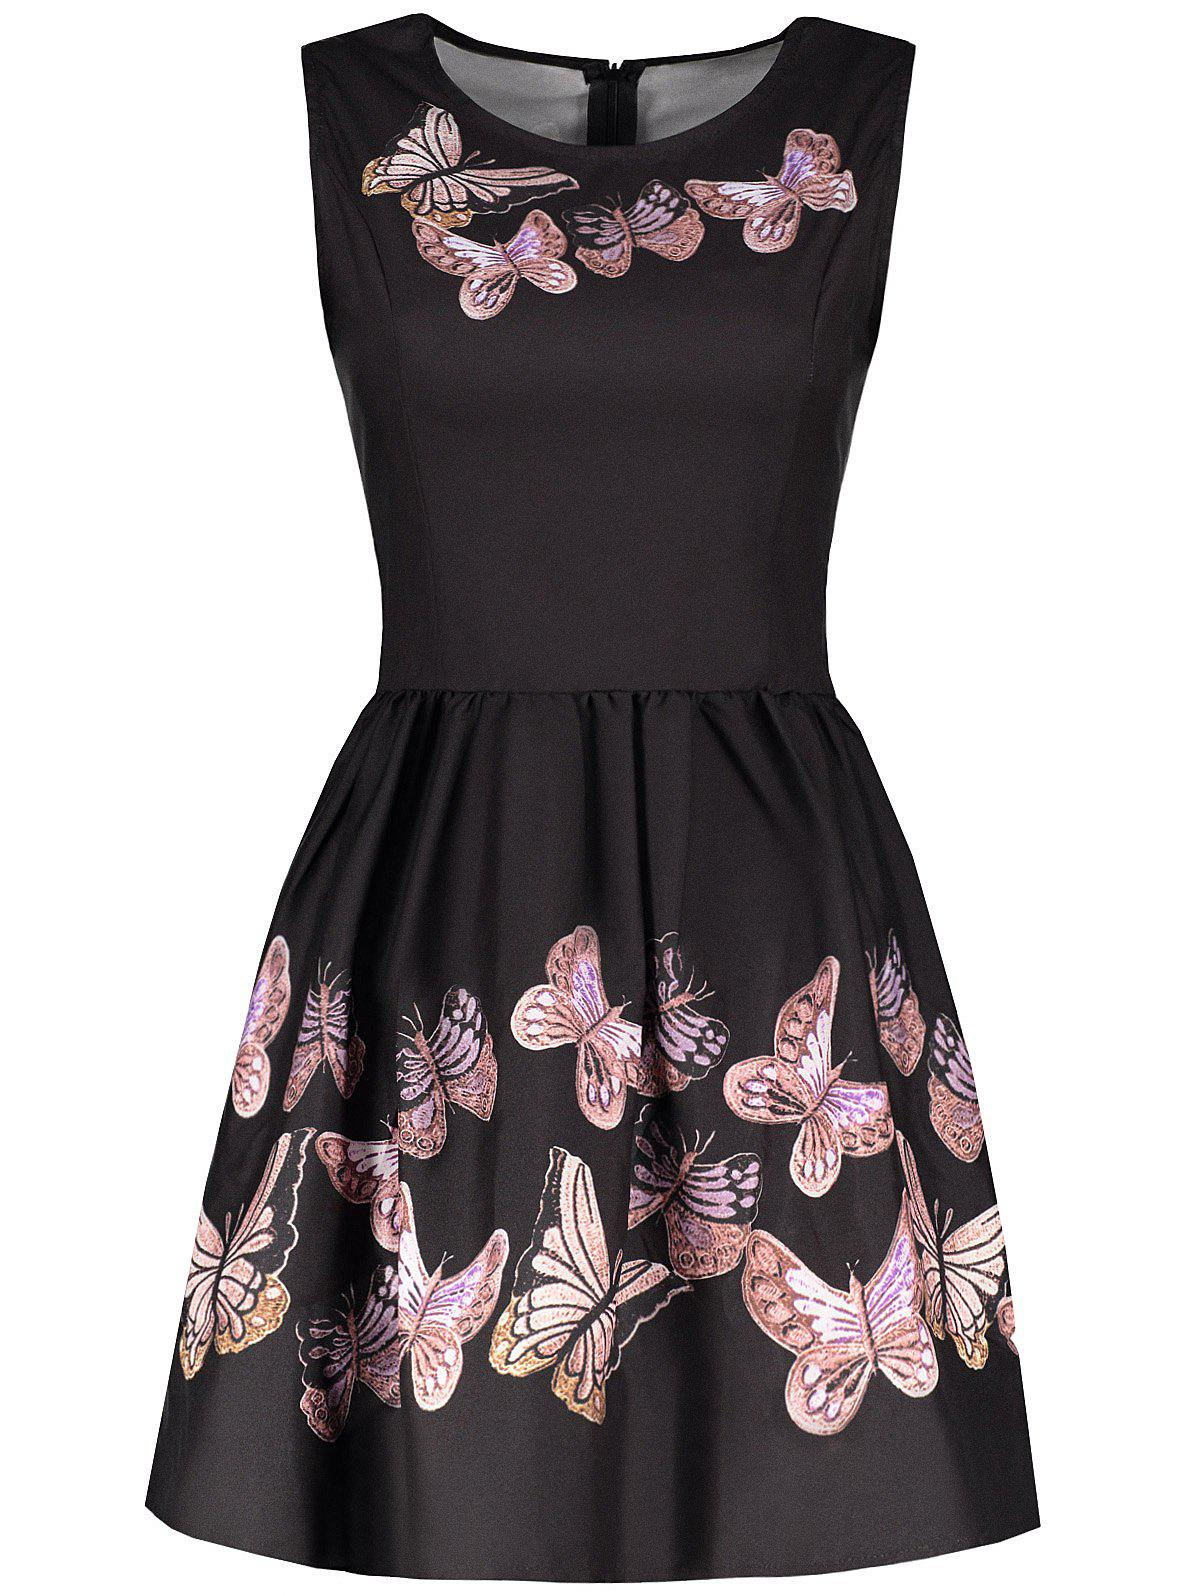 Latest Vintage Round Collar Sleeveless Butterflies Print Women's Ball Gown Dress